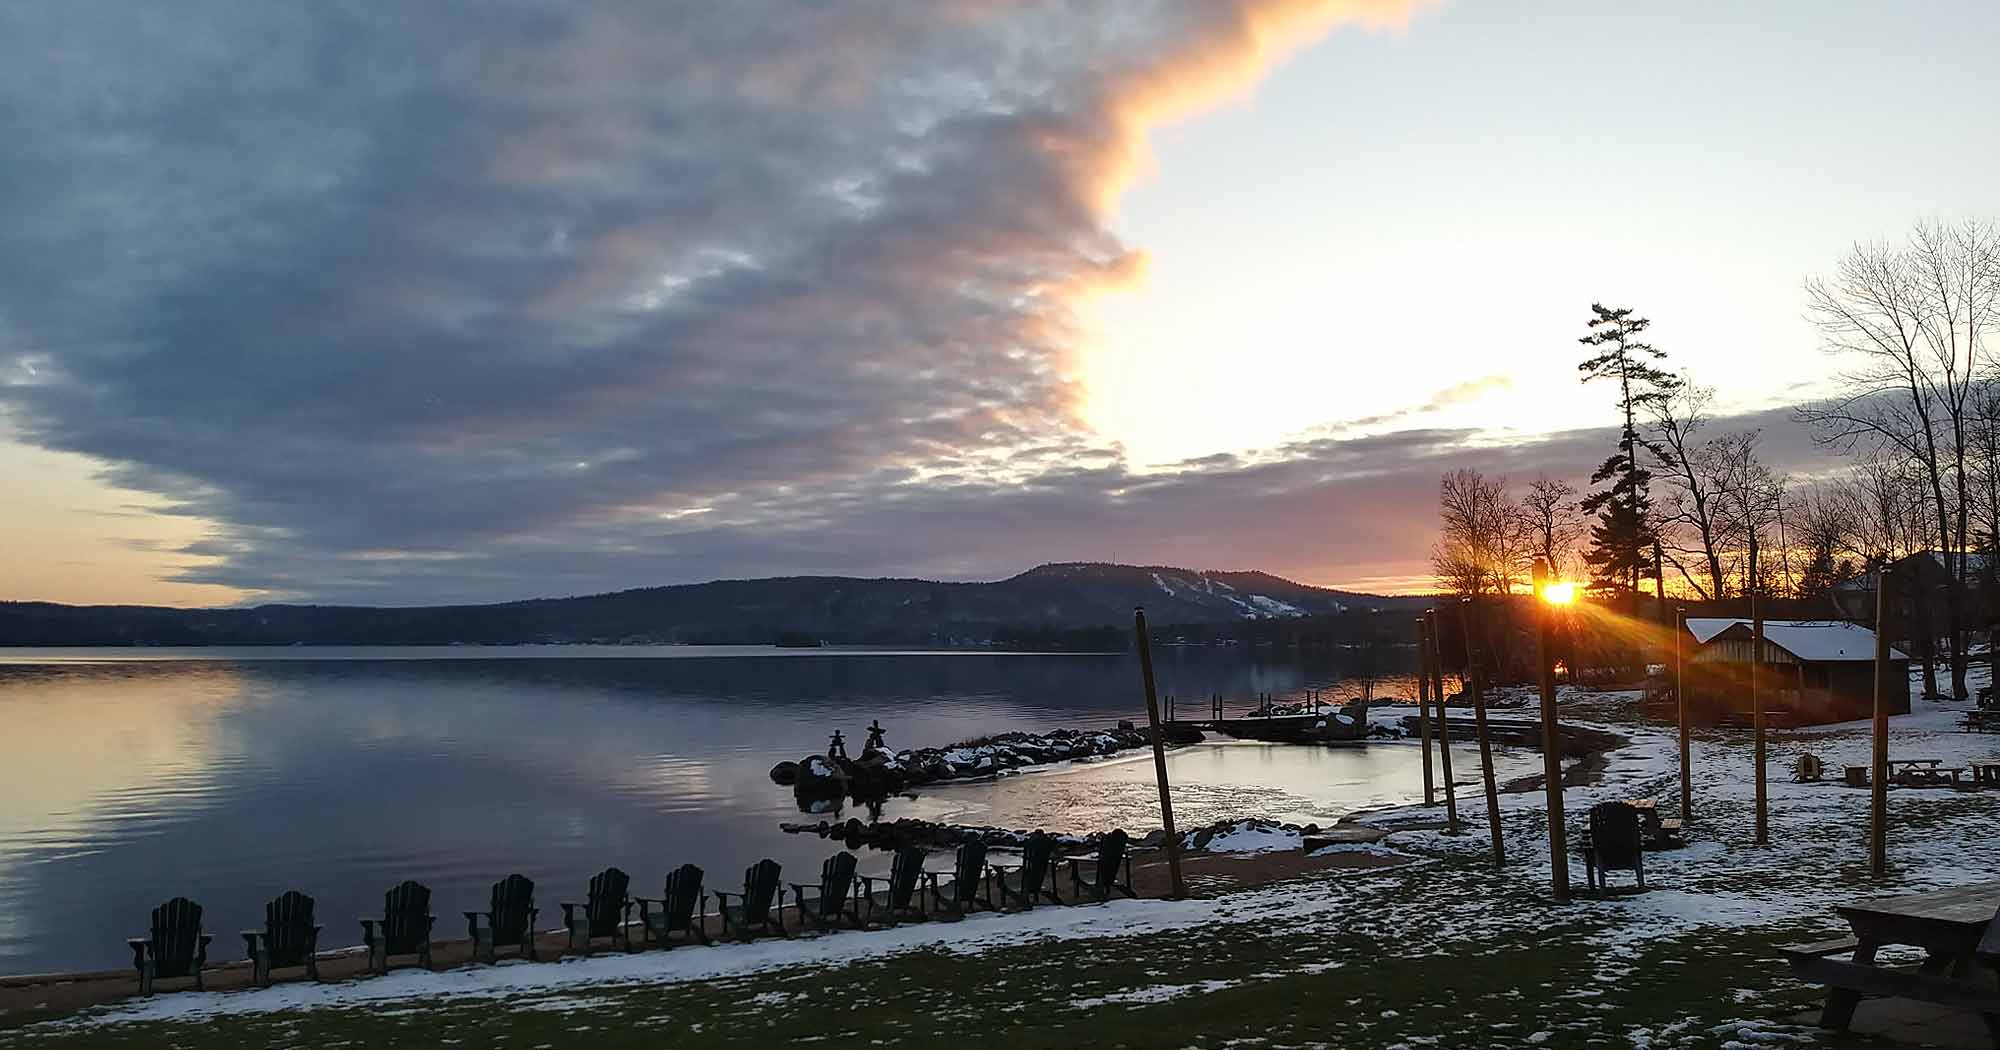 Beach area at sunset in early winter, Jcko's Beach Resort and Motel